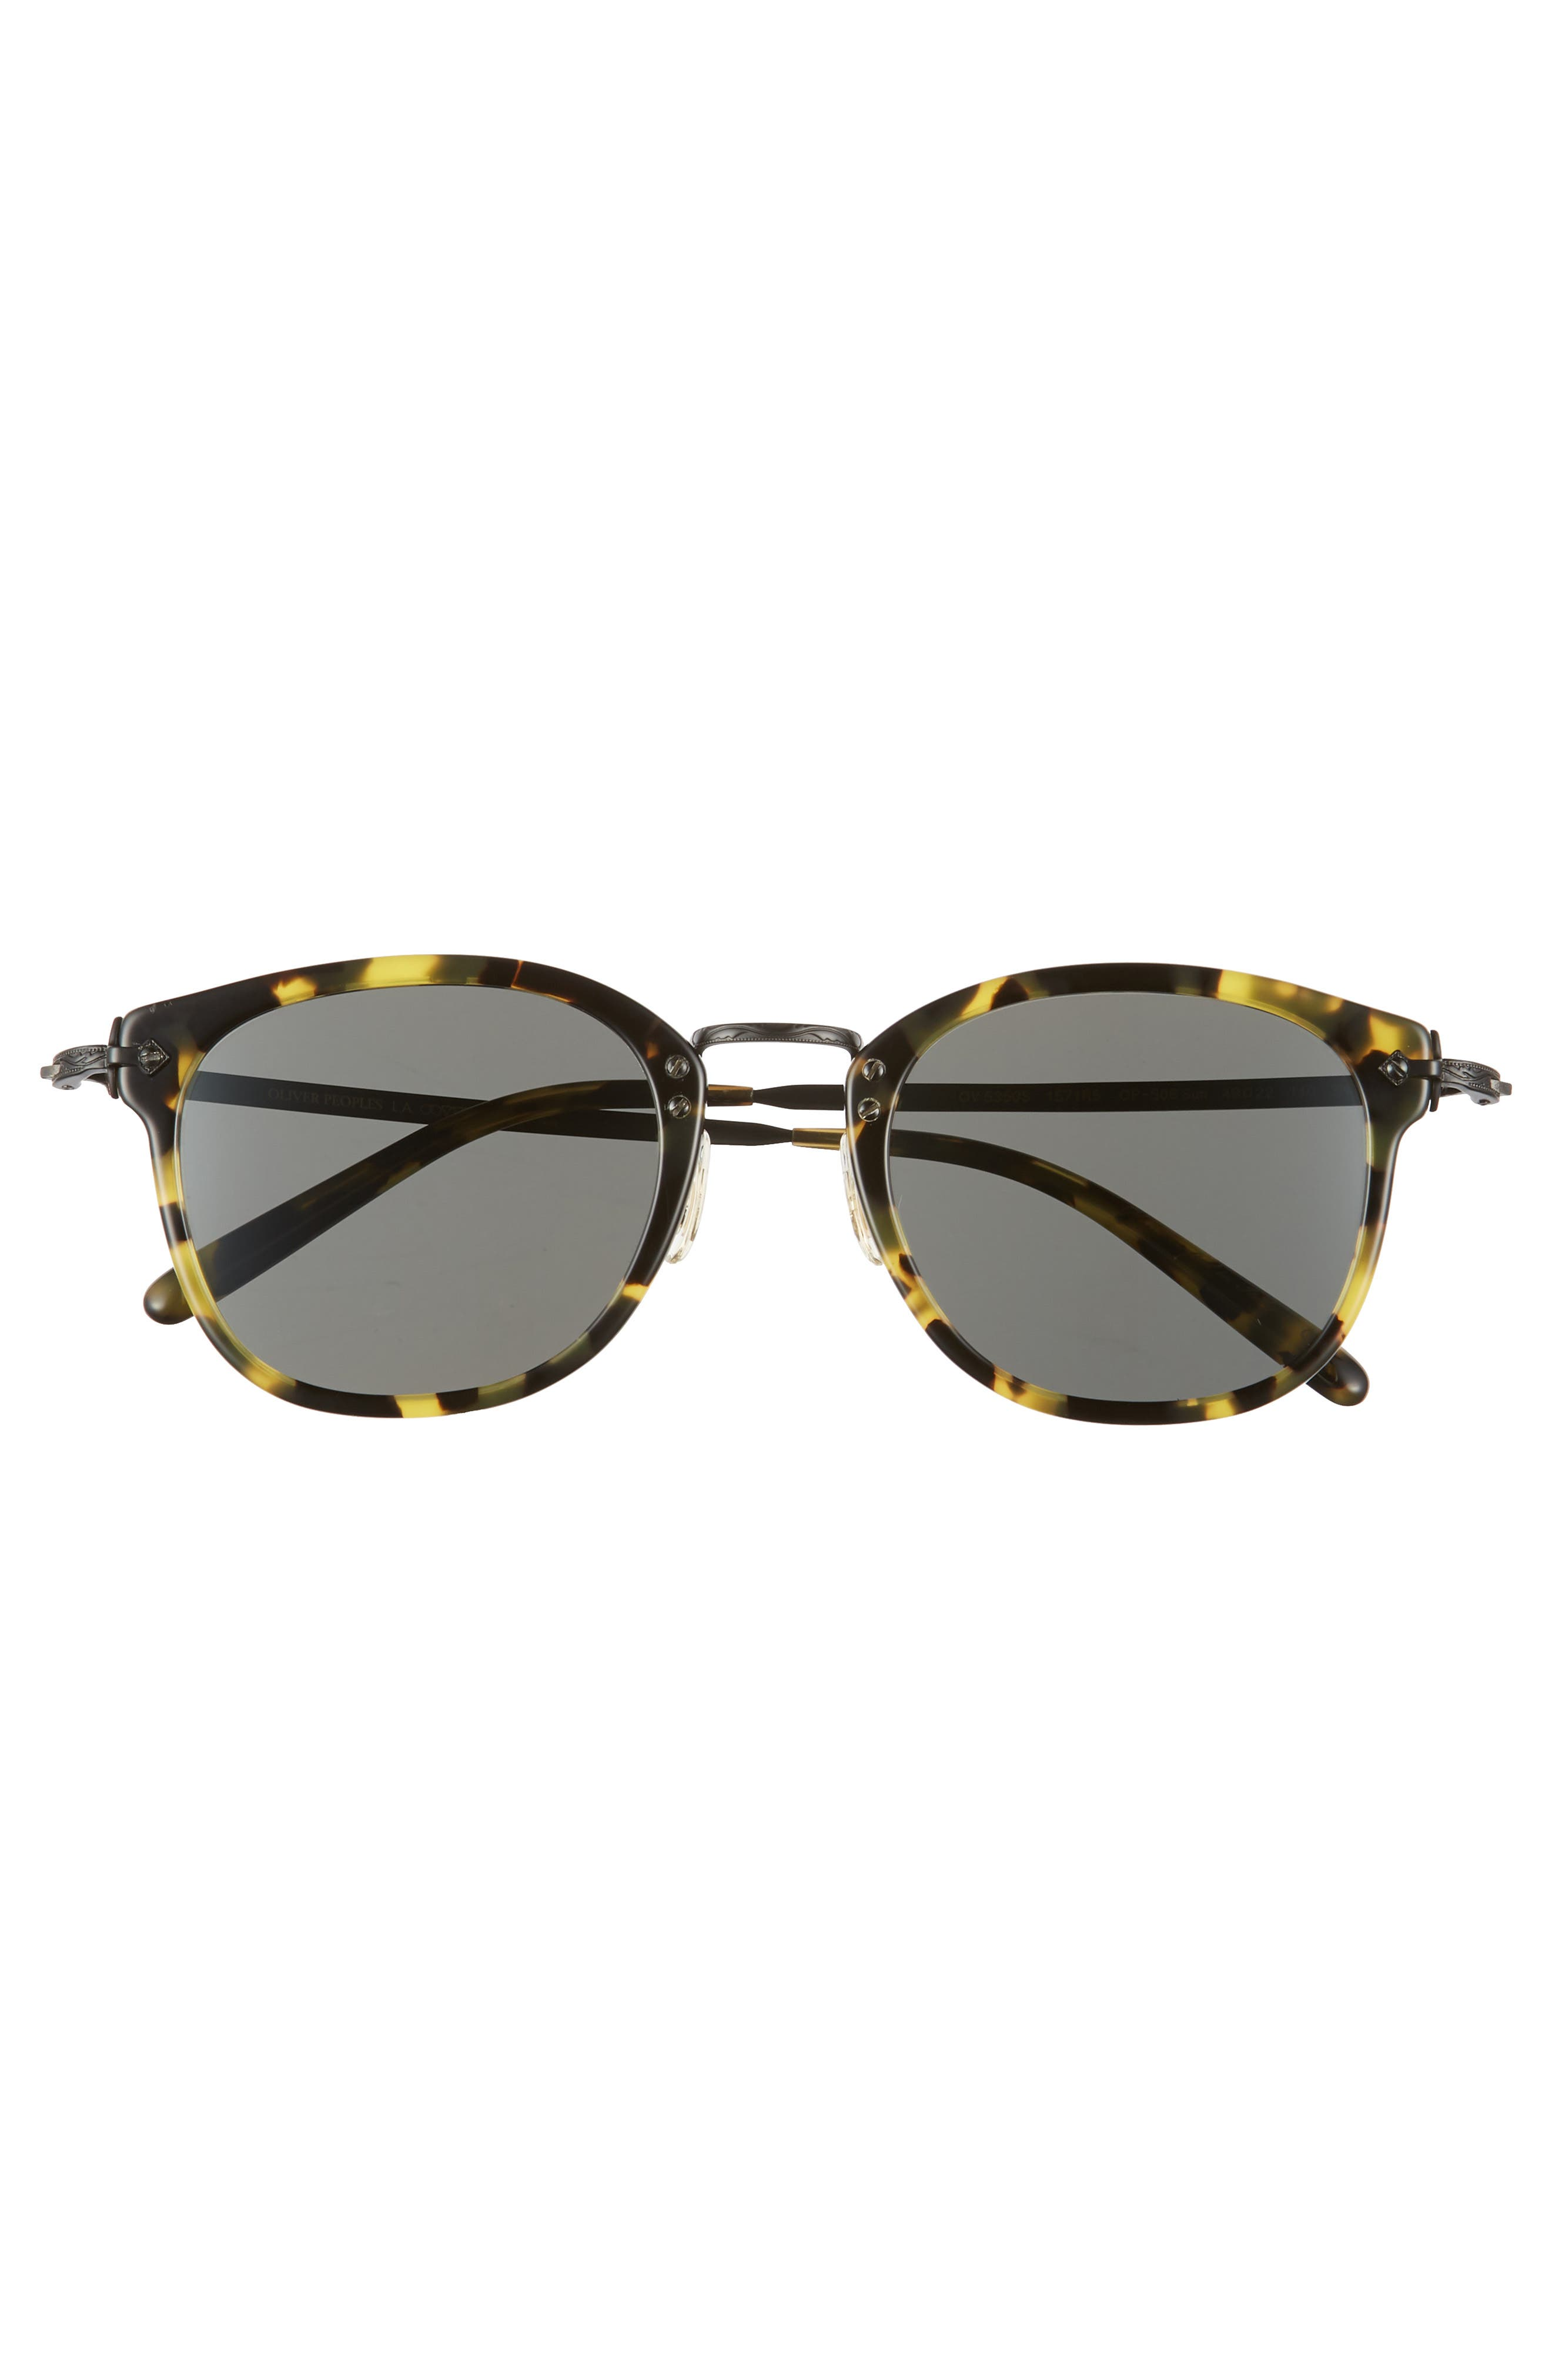 49mm Round Sunglasses,                             Alternate thumbnail 3, color,                             Vintage Dark Tortoise